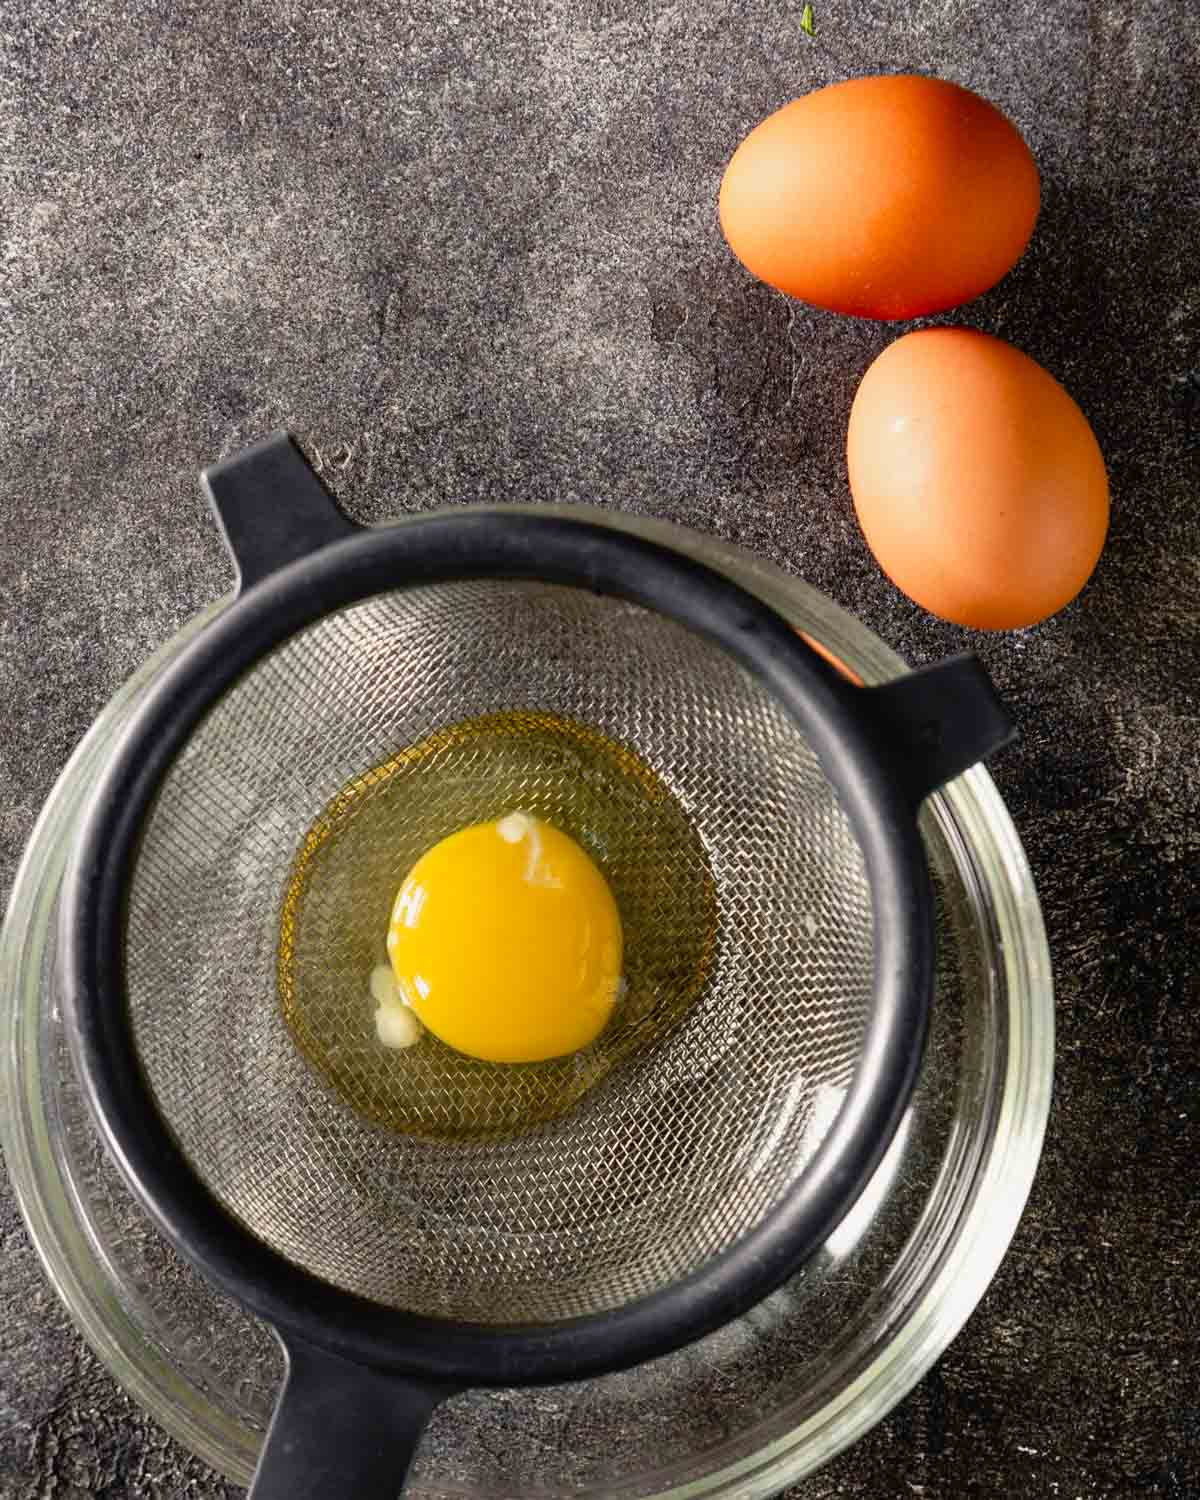 egg draining in a fine mesh sieve set over a glass bowl